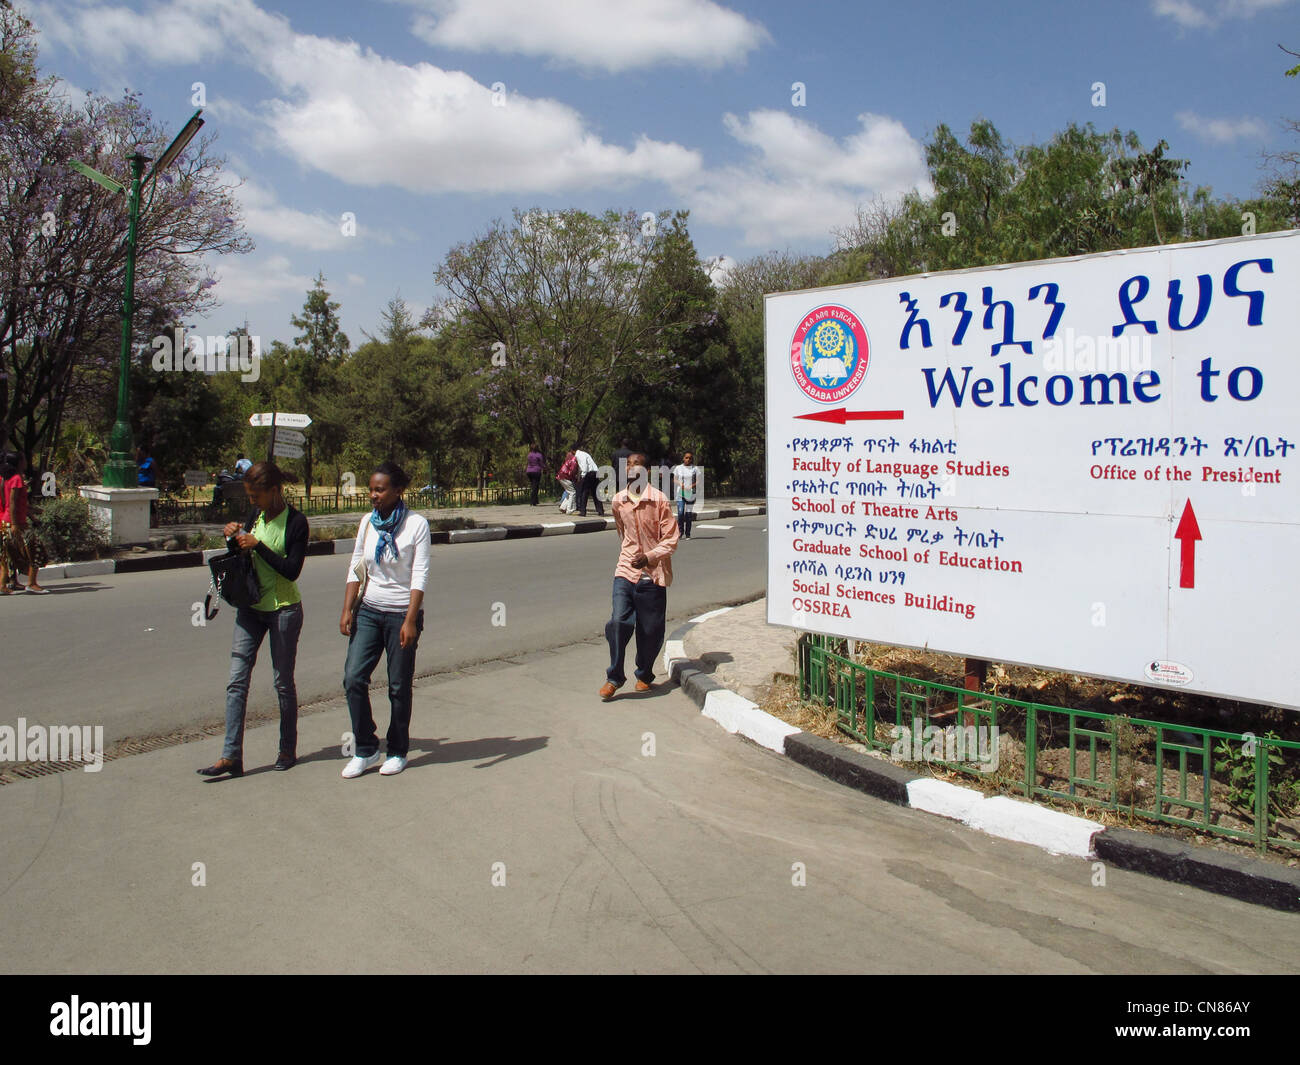 Addis Ababa University Stock Photos & Addis Ababa University Stock